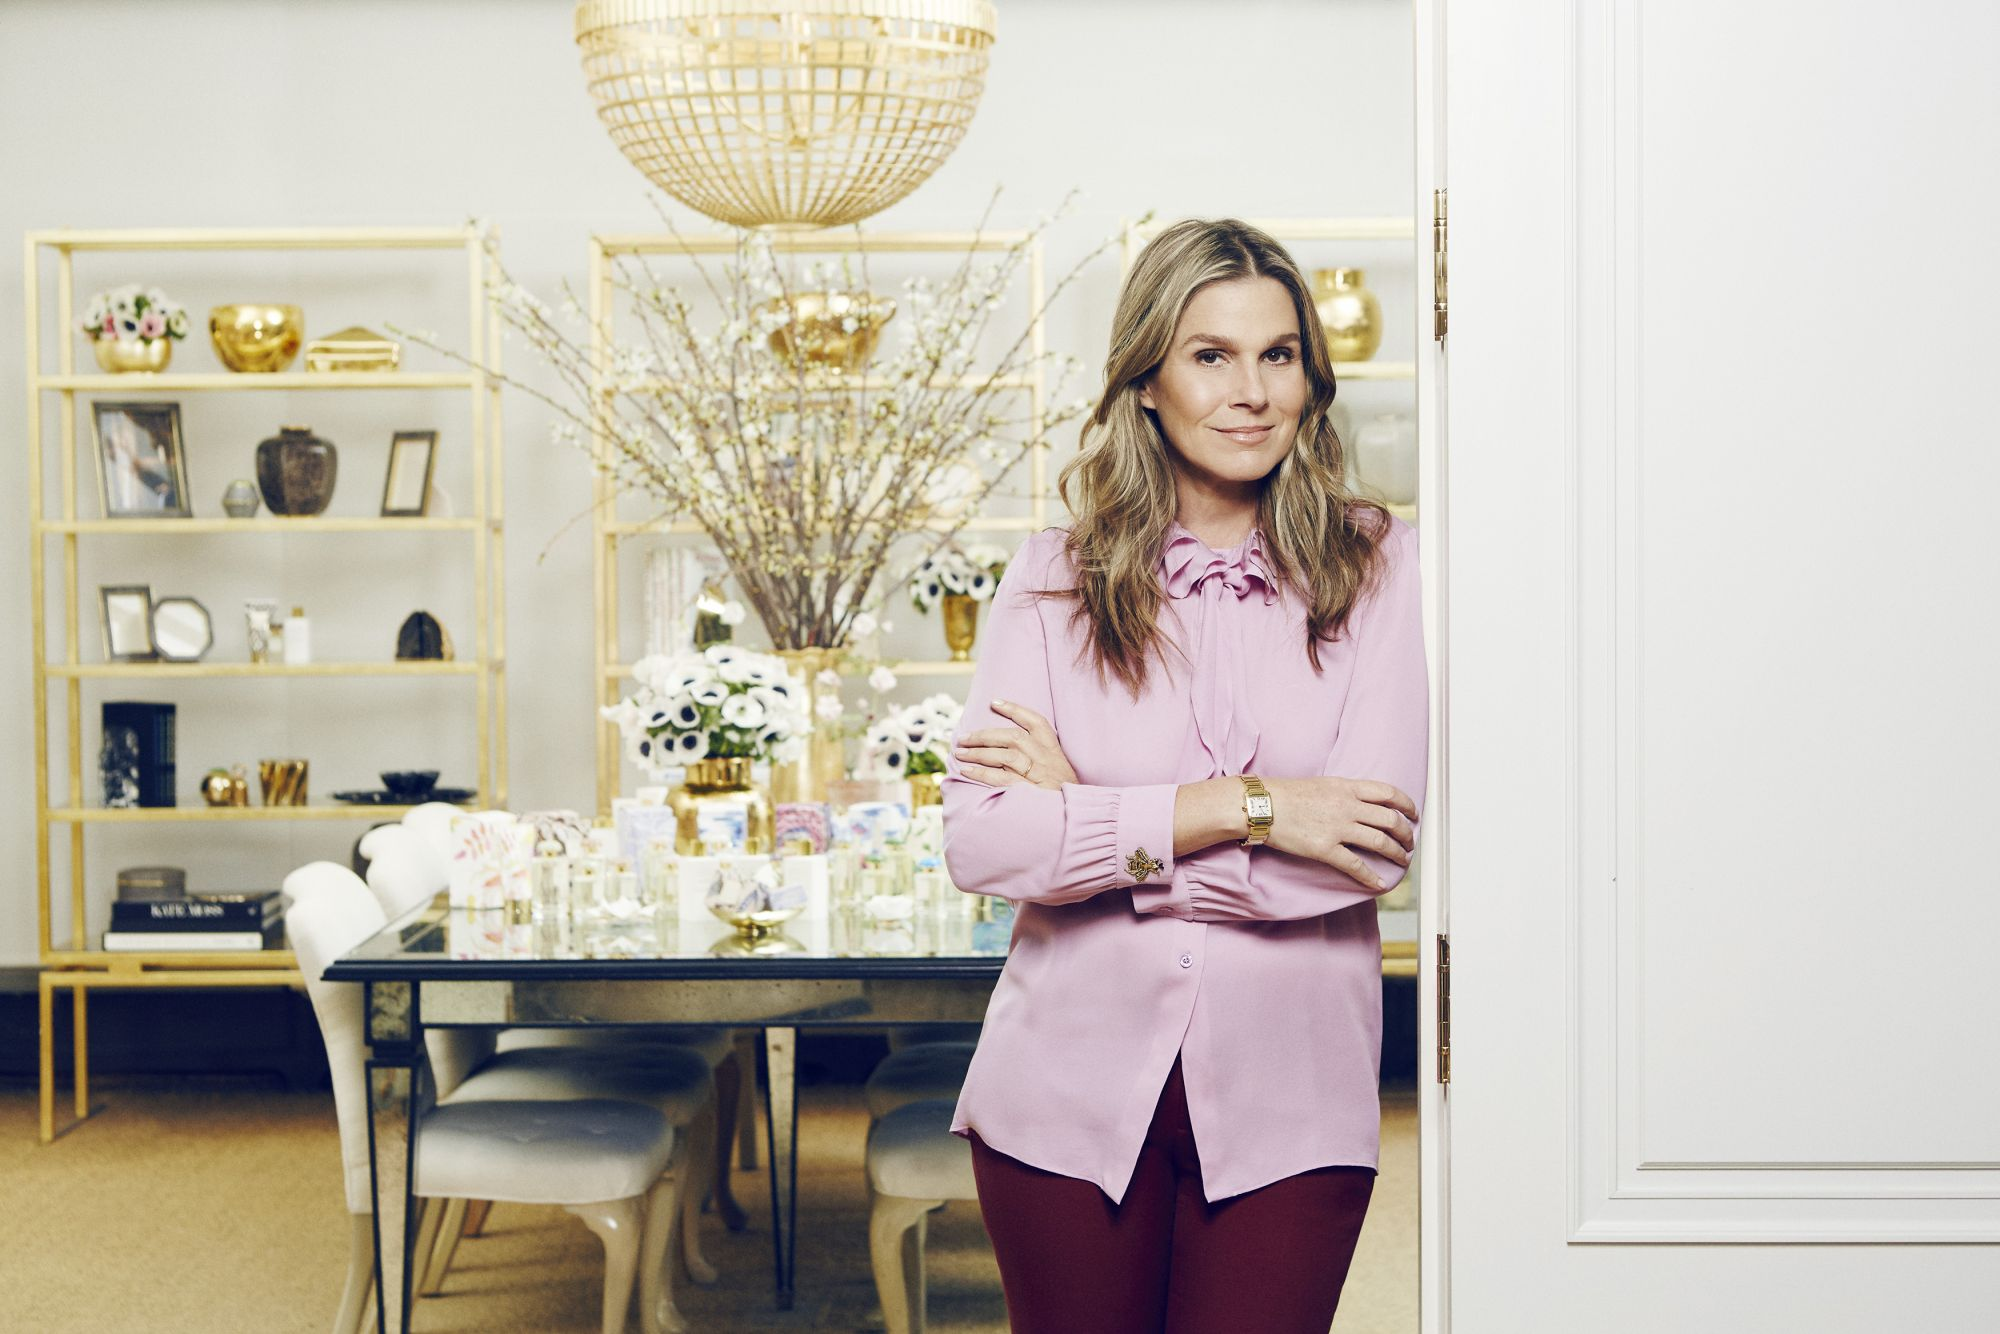 Exclusive: Aerin Lauder on Fragrance, Fashion And Family